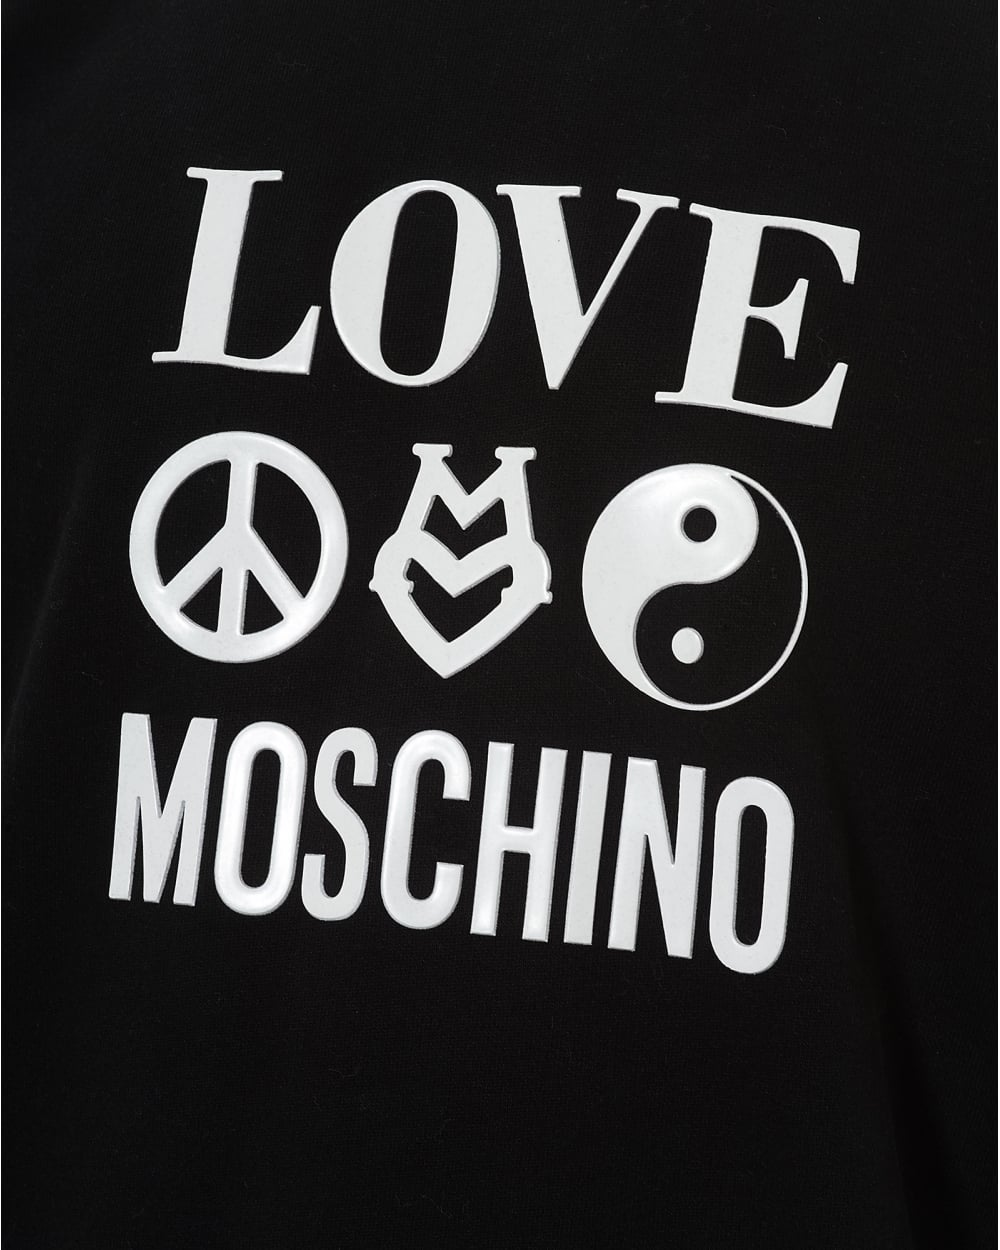 Moschino Logo - Love Moschino Mens 3 Logo Signs Sweatshirt, Regular Fit Black Jumper